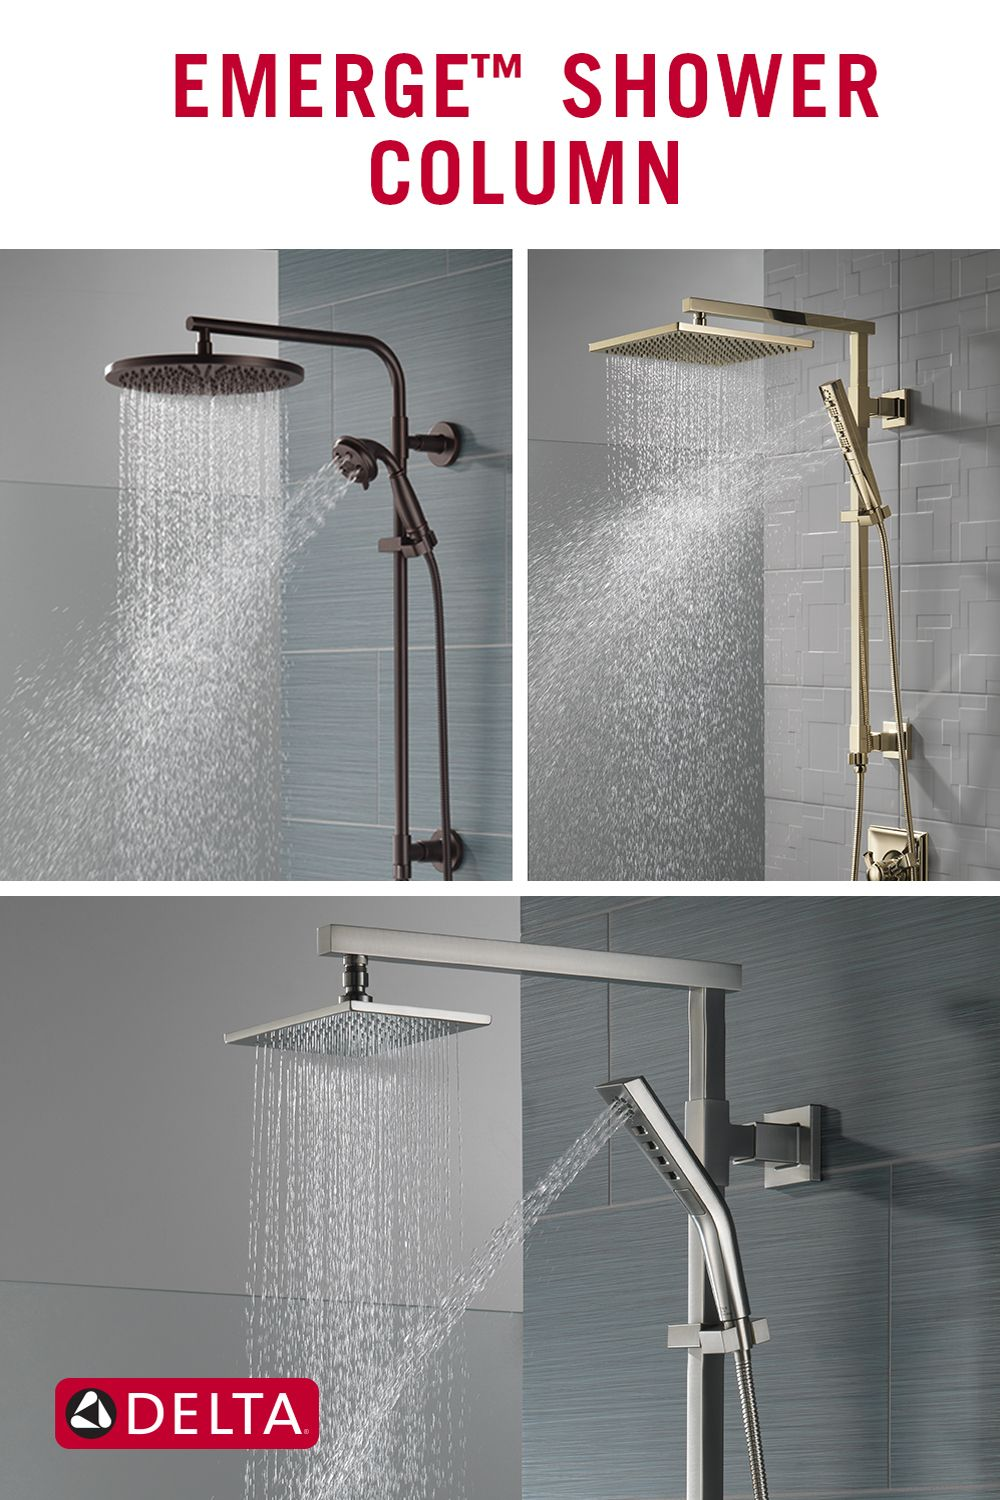 The Emerge Shower Column Is An Easy Solution That Makes An Instant